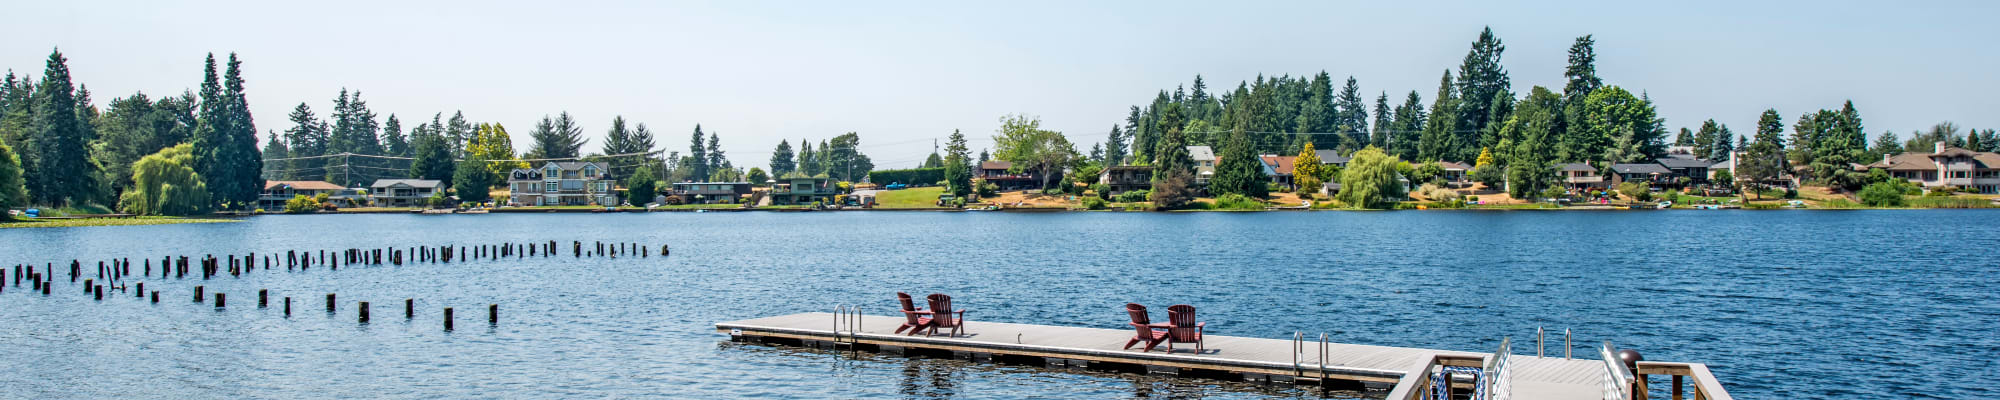 Privacy policy at Surprise Lake Village in Milton, Washington